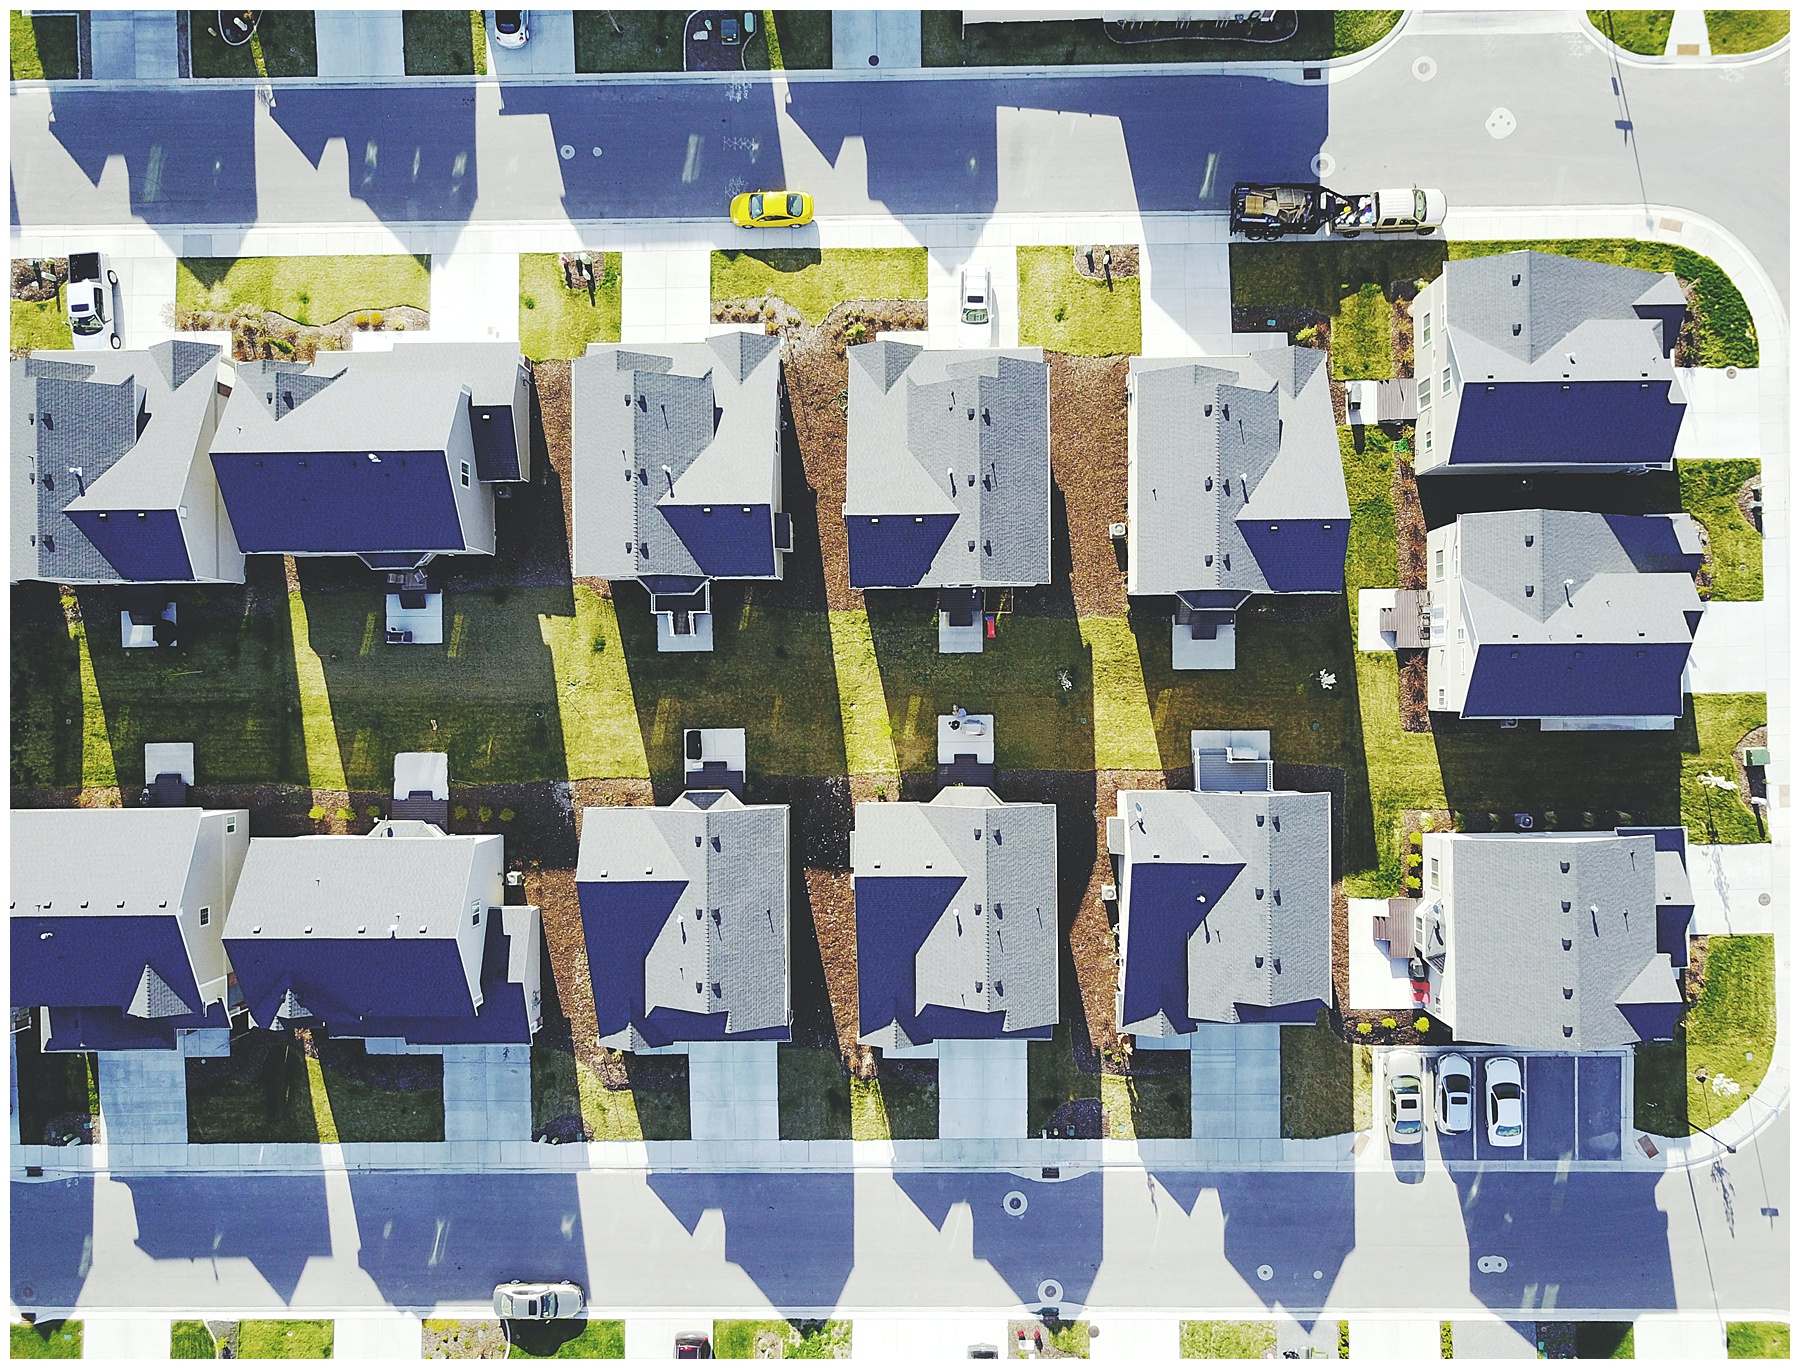 aerial view of neighborhood full of houses for buying a home in seller's market